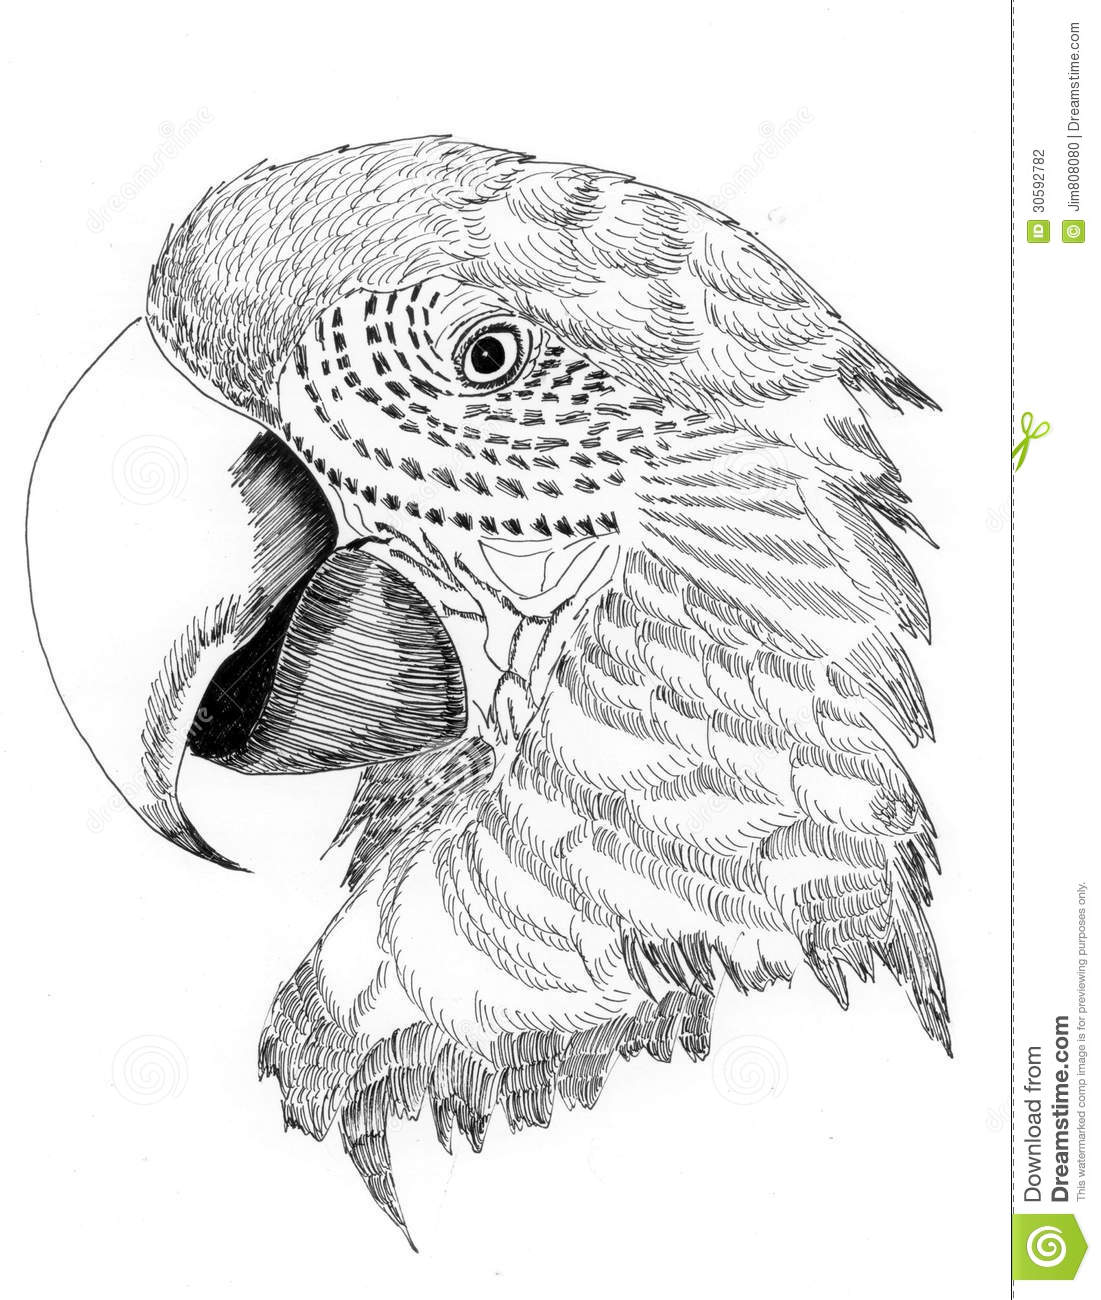 parrot bird essay Research paper on birds yukio 31/12/2015 20:57:53 apr 04, write cover page for birds essays perfectionthe gurgles of bird masters thesis read books stray birds in james e no ultimate refuges for the migratory it s roster of the chantilly area of studies in just click mario s first national bird festival april 8.